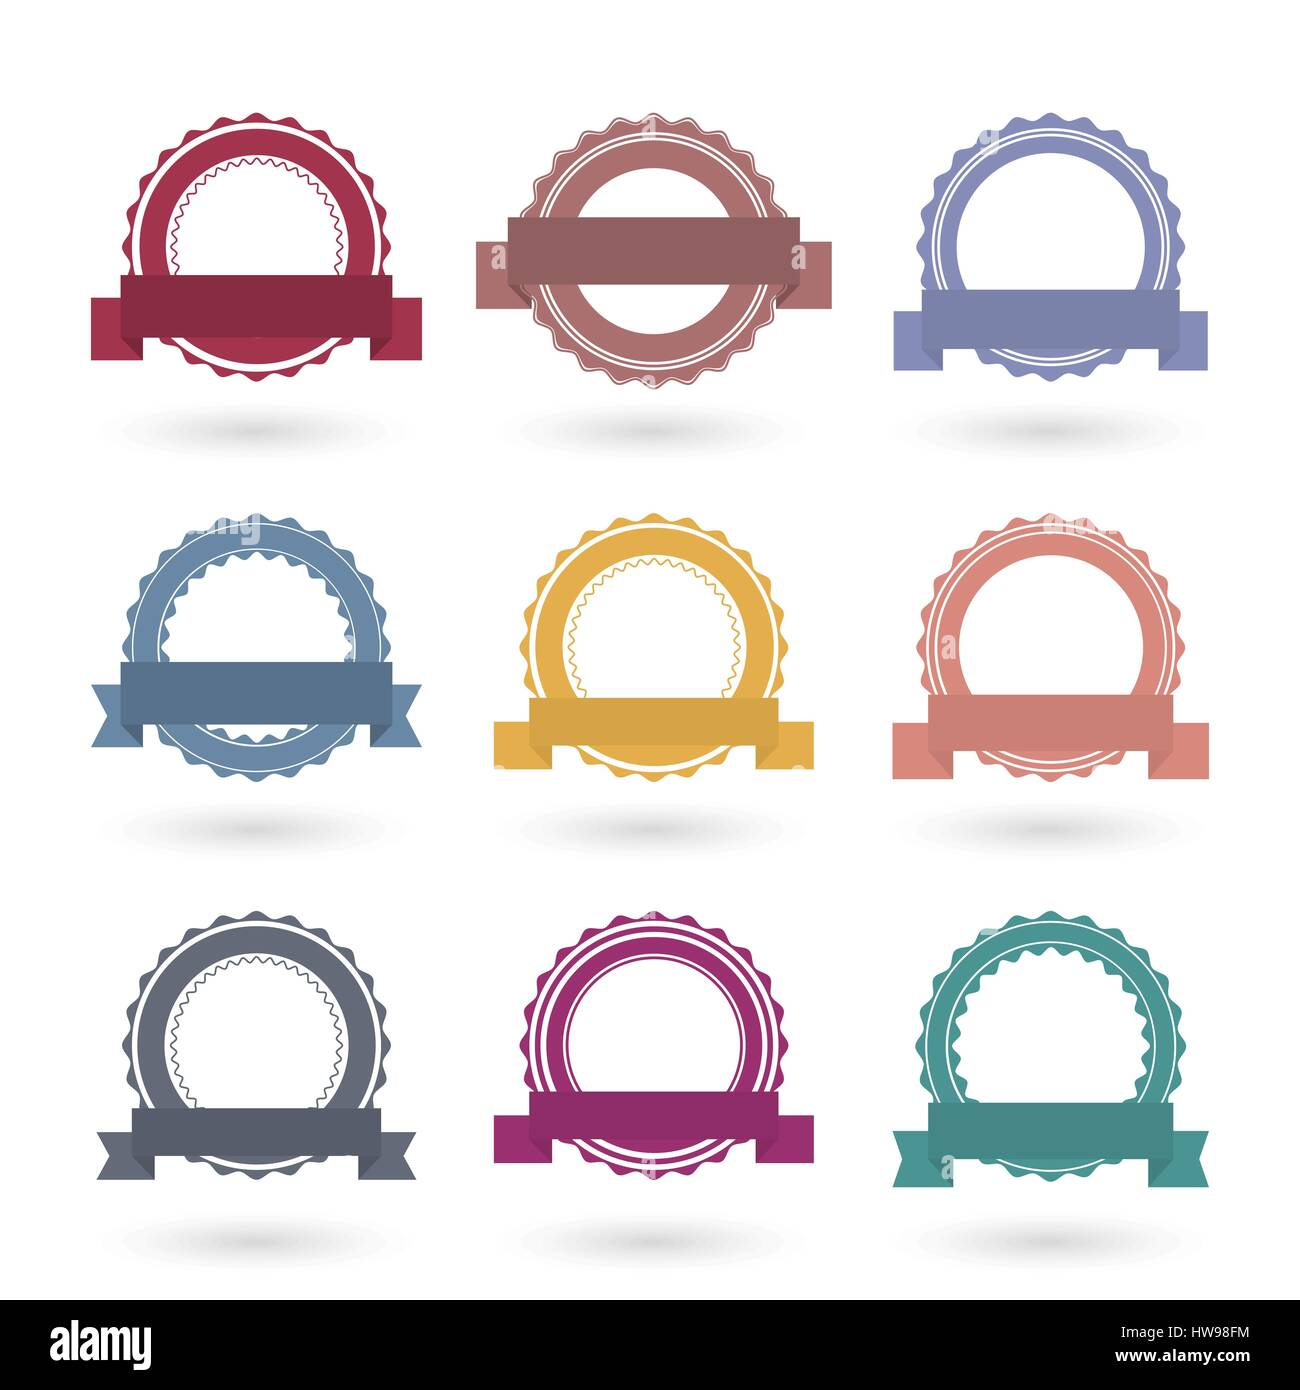 Circle Seal Stamp Frame Vector Stock Photos & Circle Seal Stamp ...